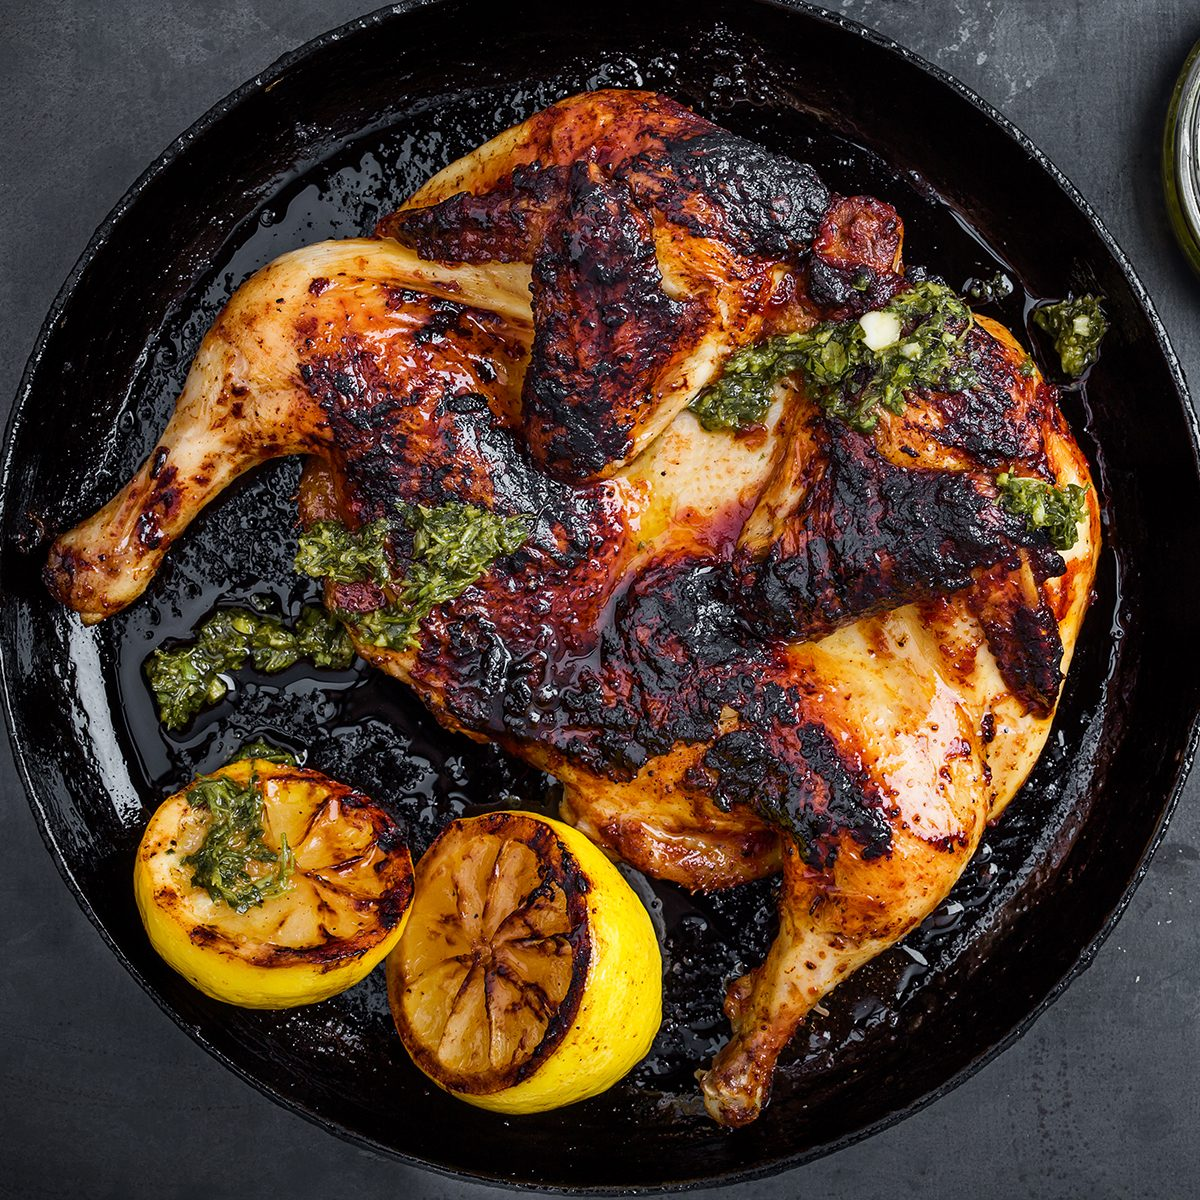 Barbequed chicken with chimichurri sauce in rustic cast iron pan on gray ready to eat, top view